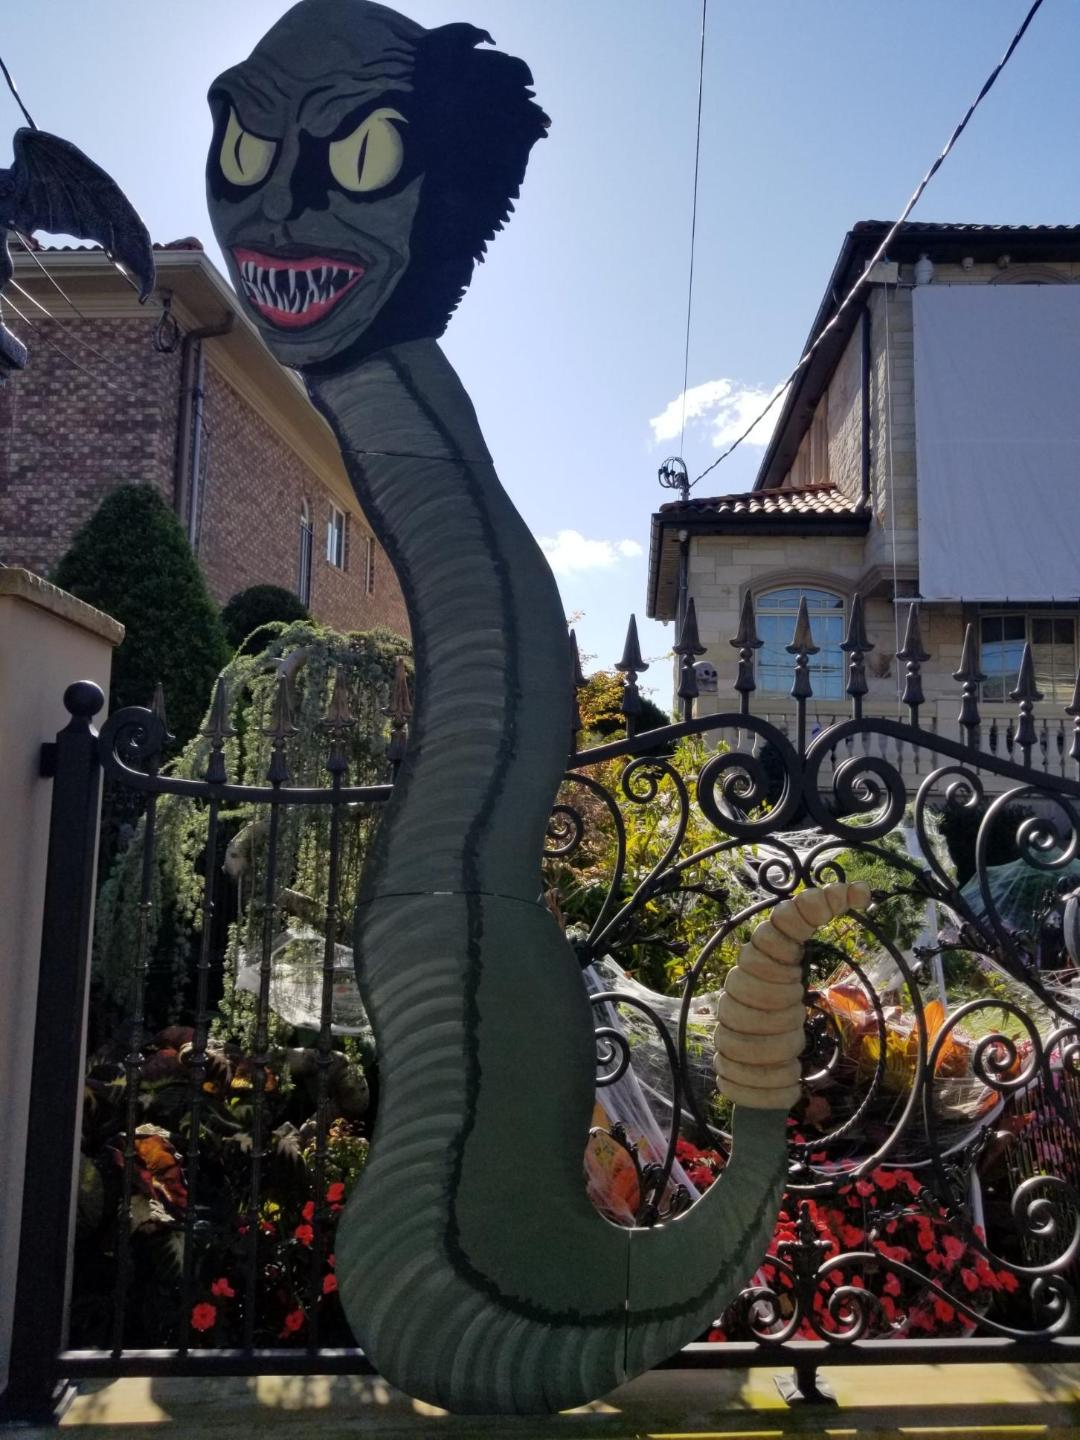 Details about SNAKE from BEETLEJUICE 8 FT HALLOWEEN LAWN ART YARD SIGN DECOR